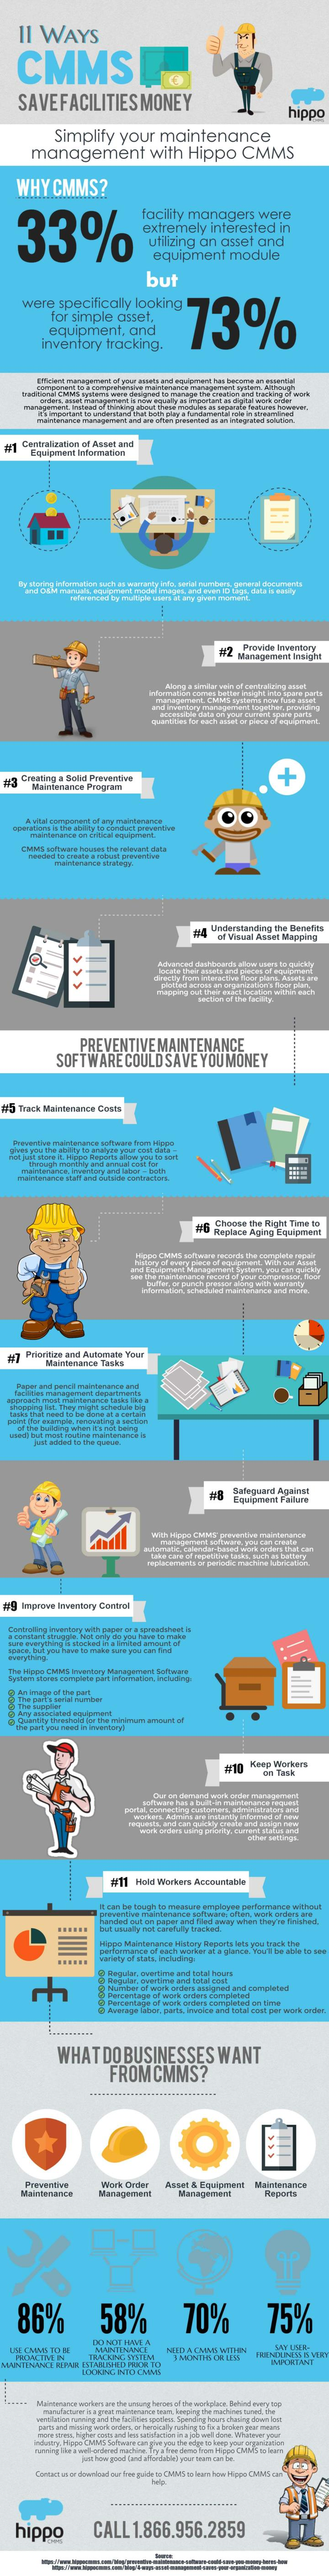 11 ways cmms software will save your business money infographic